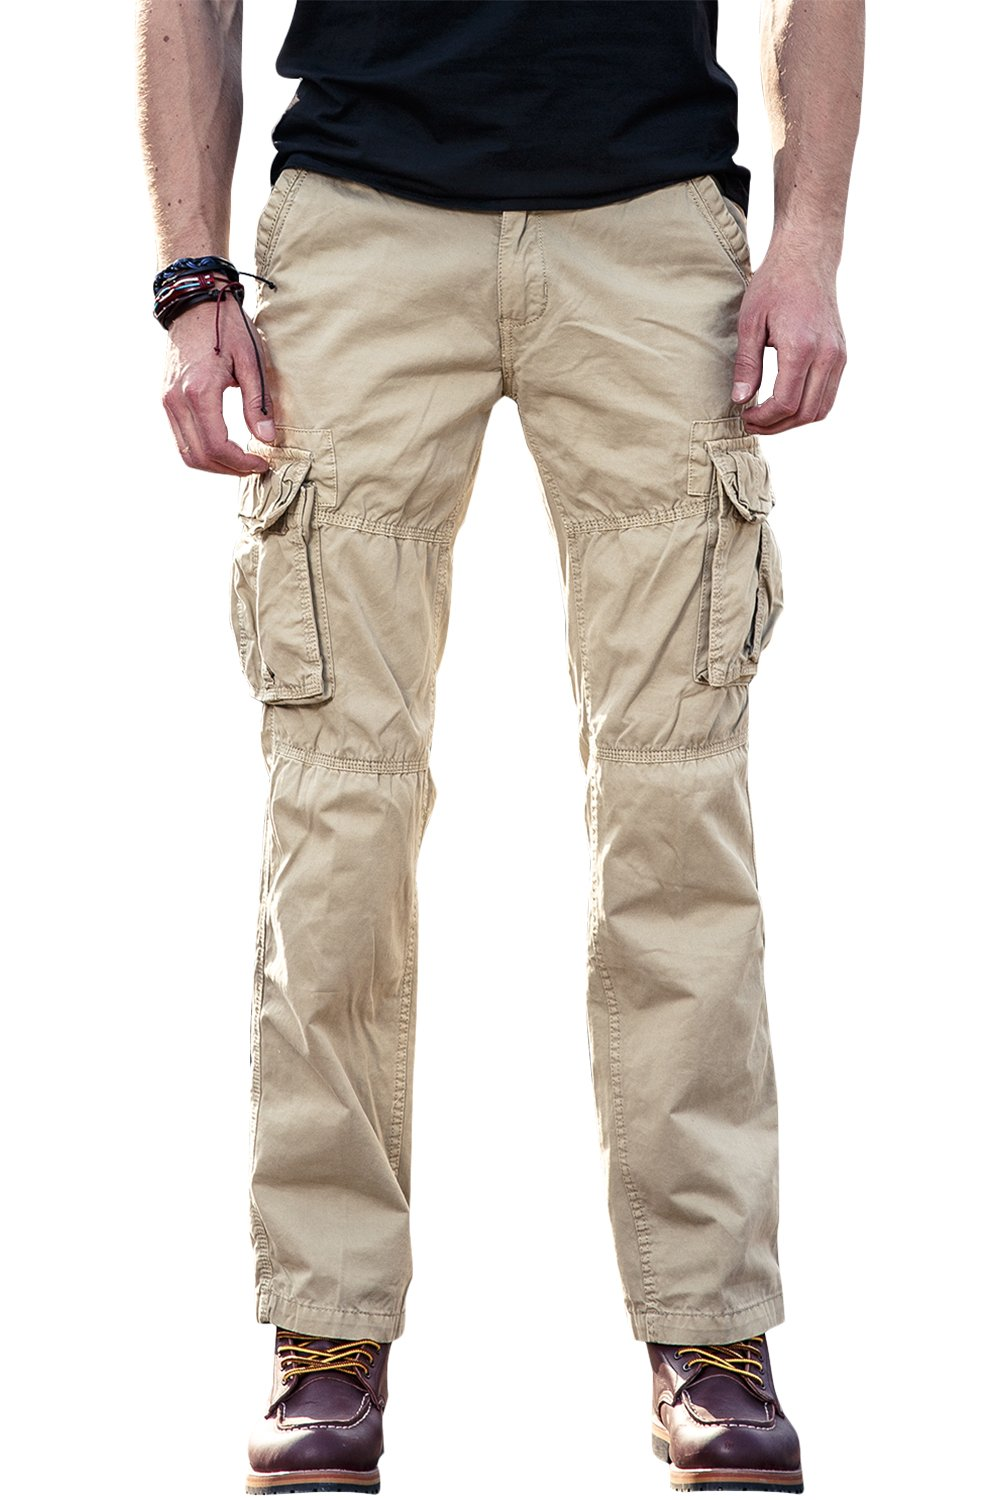 FLY HAWK Men's Chino Cargo Casual Pants Cotton Combat Trousers Multi Pockets Workwear CA3225